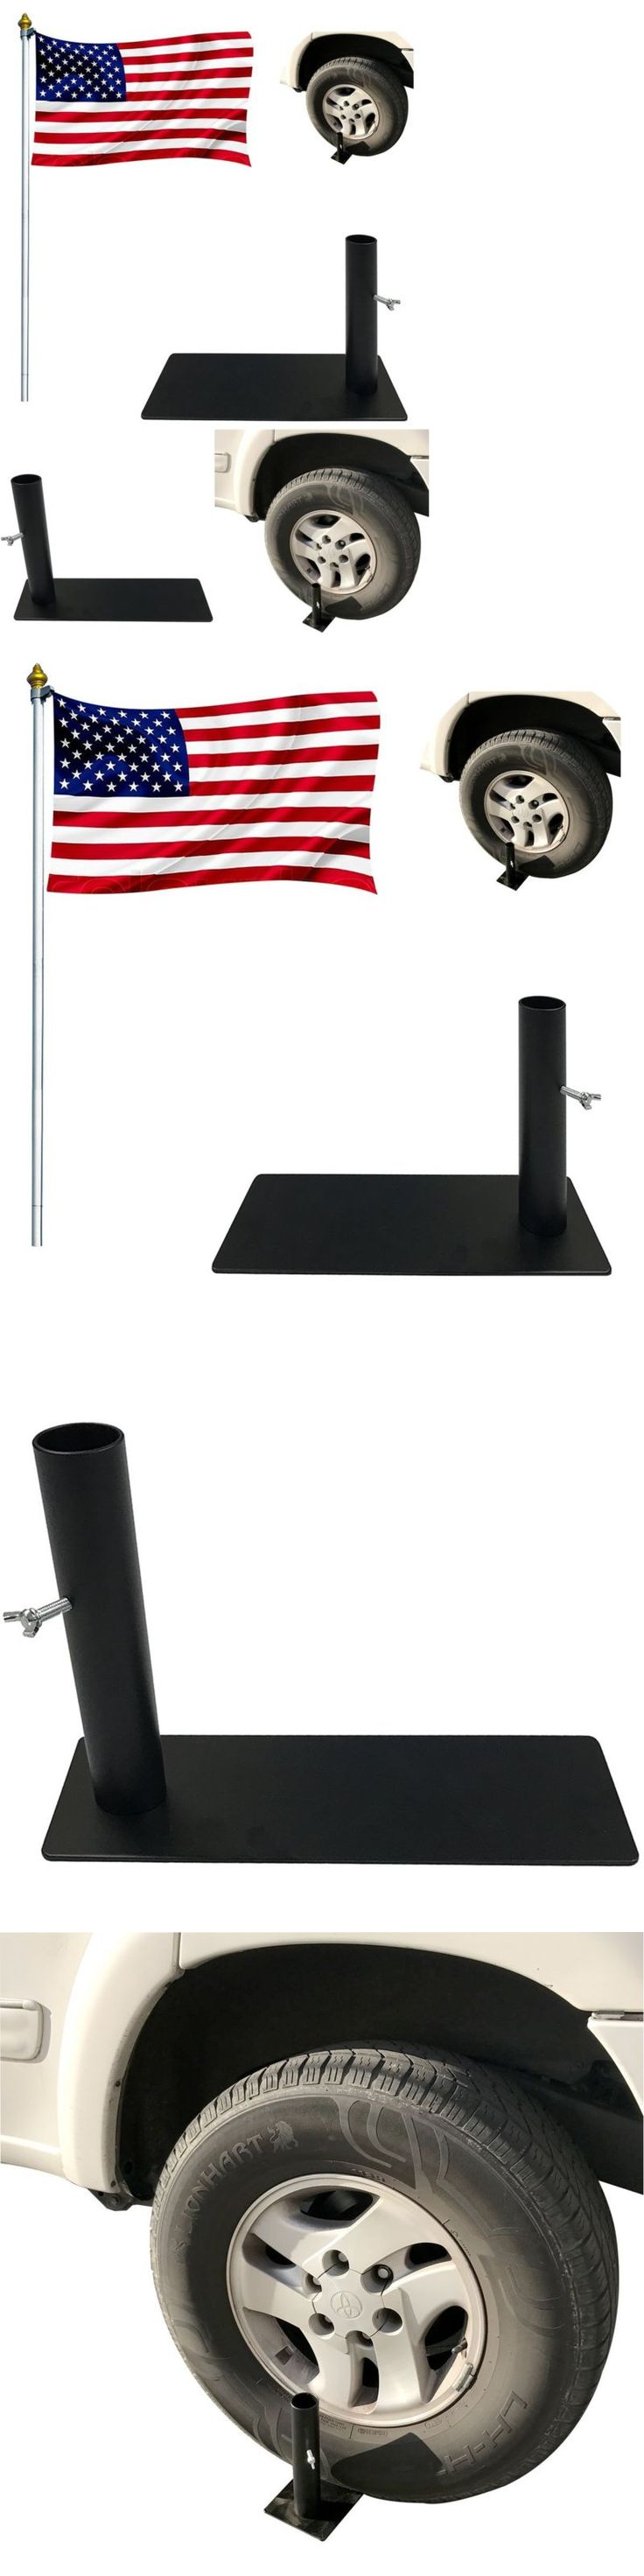 Flag Poles and Parts 43536: Tire Mount Flag Pole Holder Tailgate Bracket Works With Cars, Trucks And Rv S -> BUY IT NOW ONLY: $31.2 on eBay!